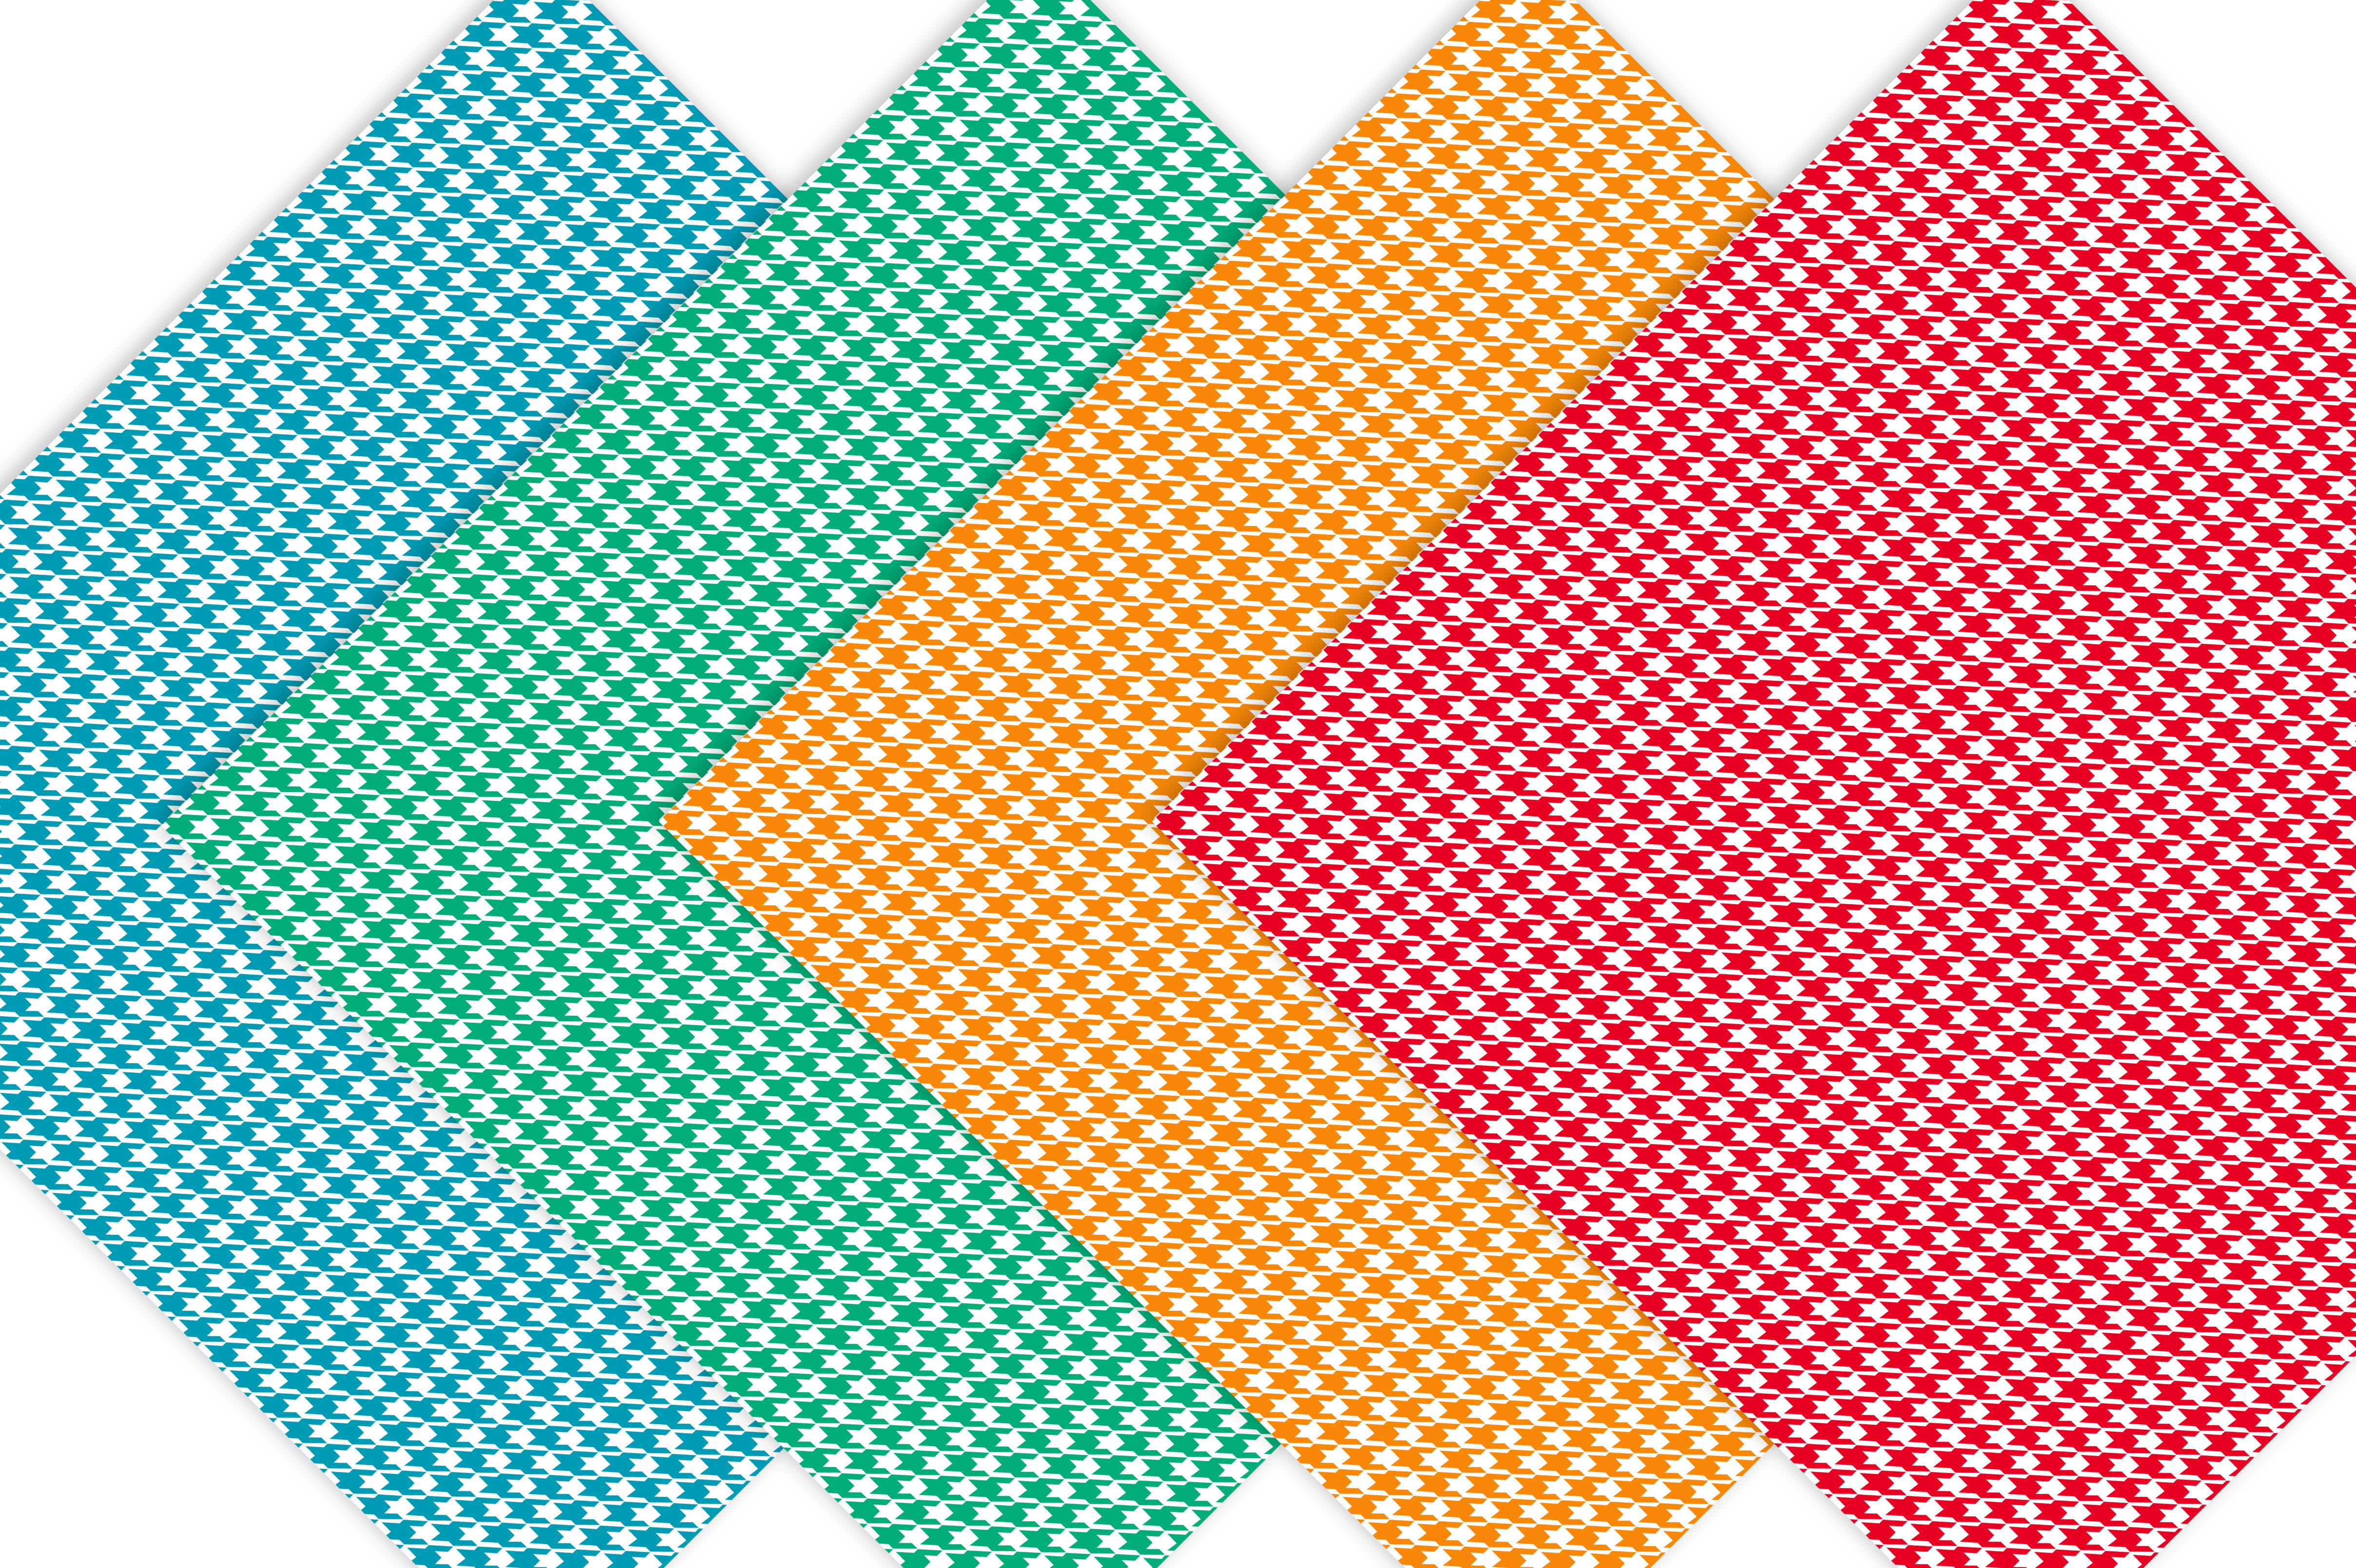 Houndstooth Digital Paper Pack - Rainbow example image 3